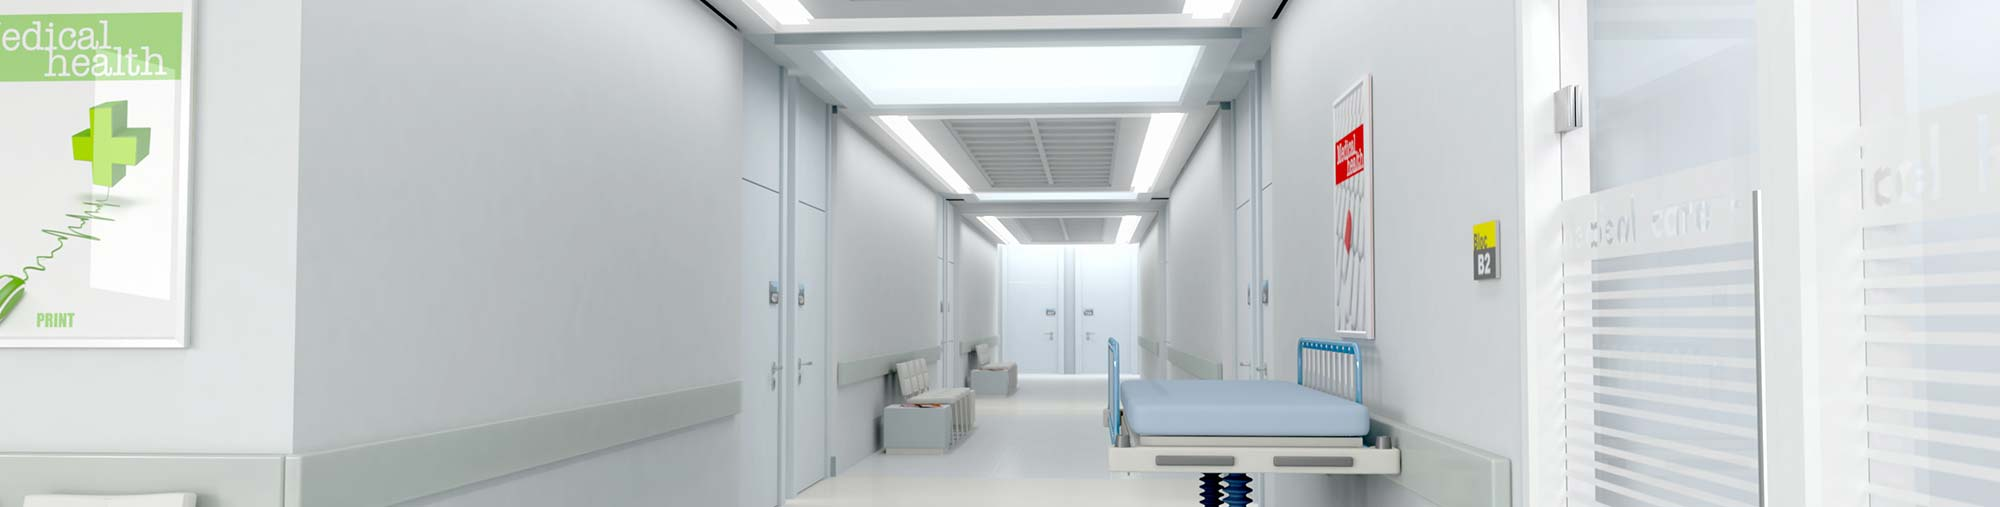 Hallway of a hospital wing